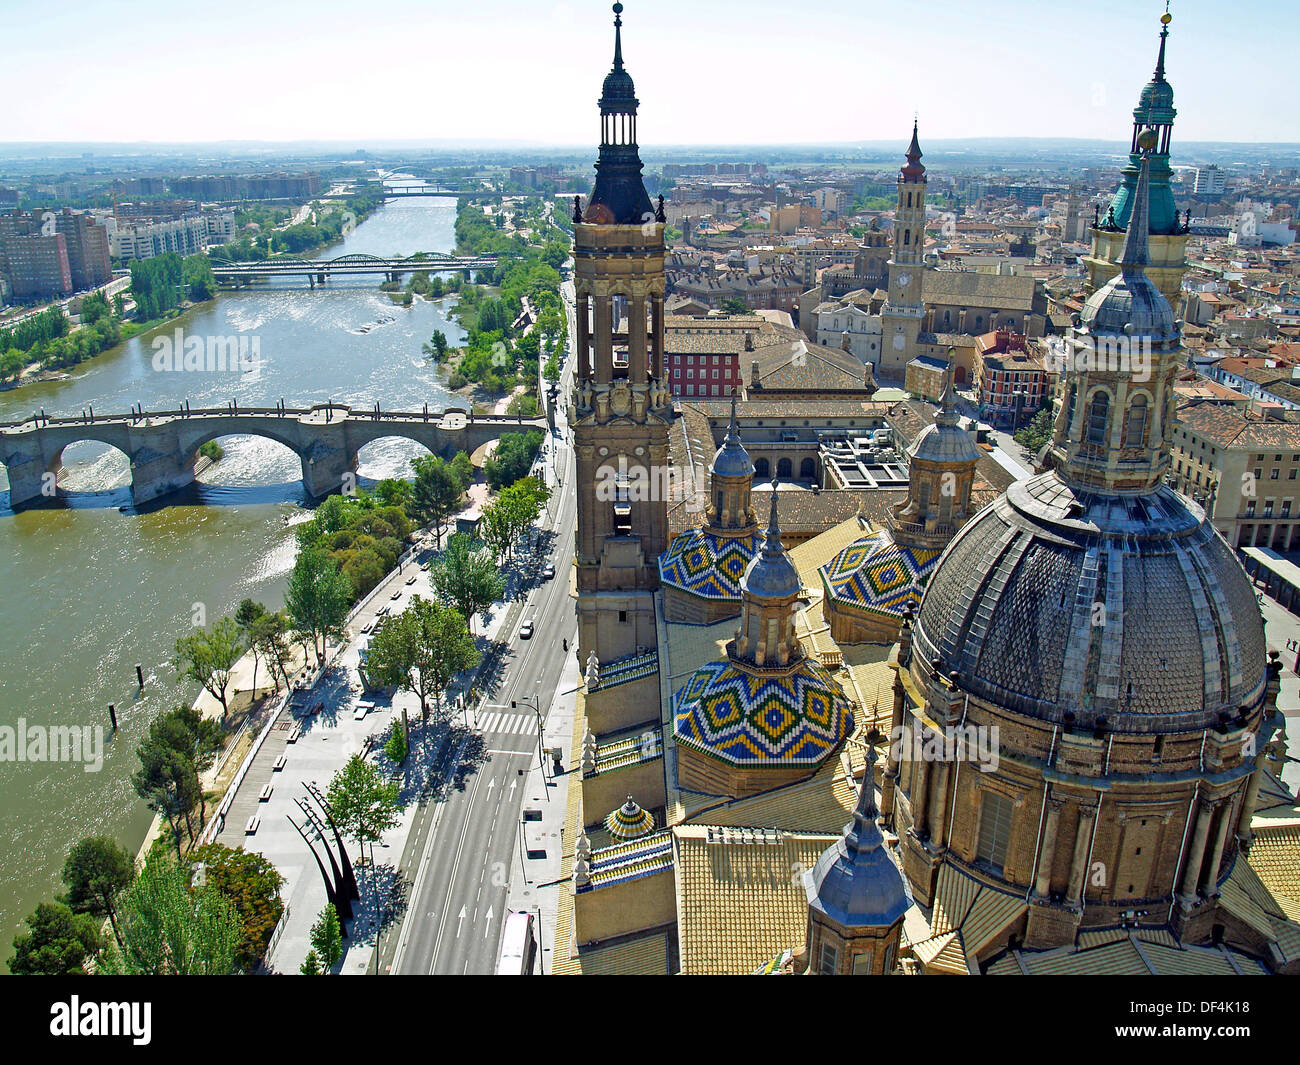 The Ebro River from atop the Basilica of Our Lady of The Pillar,Zaragoza,Spain - Stock Image